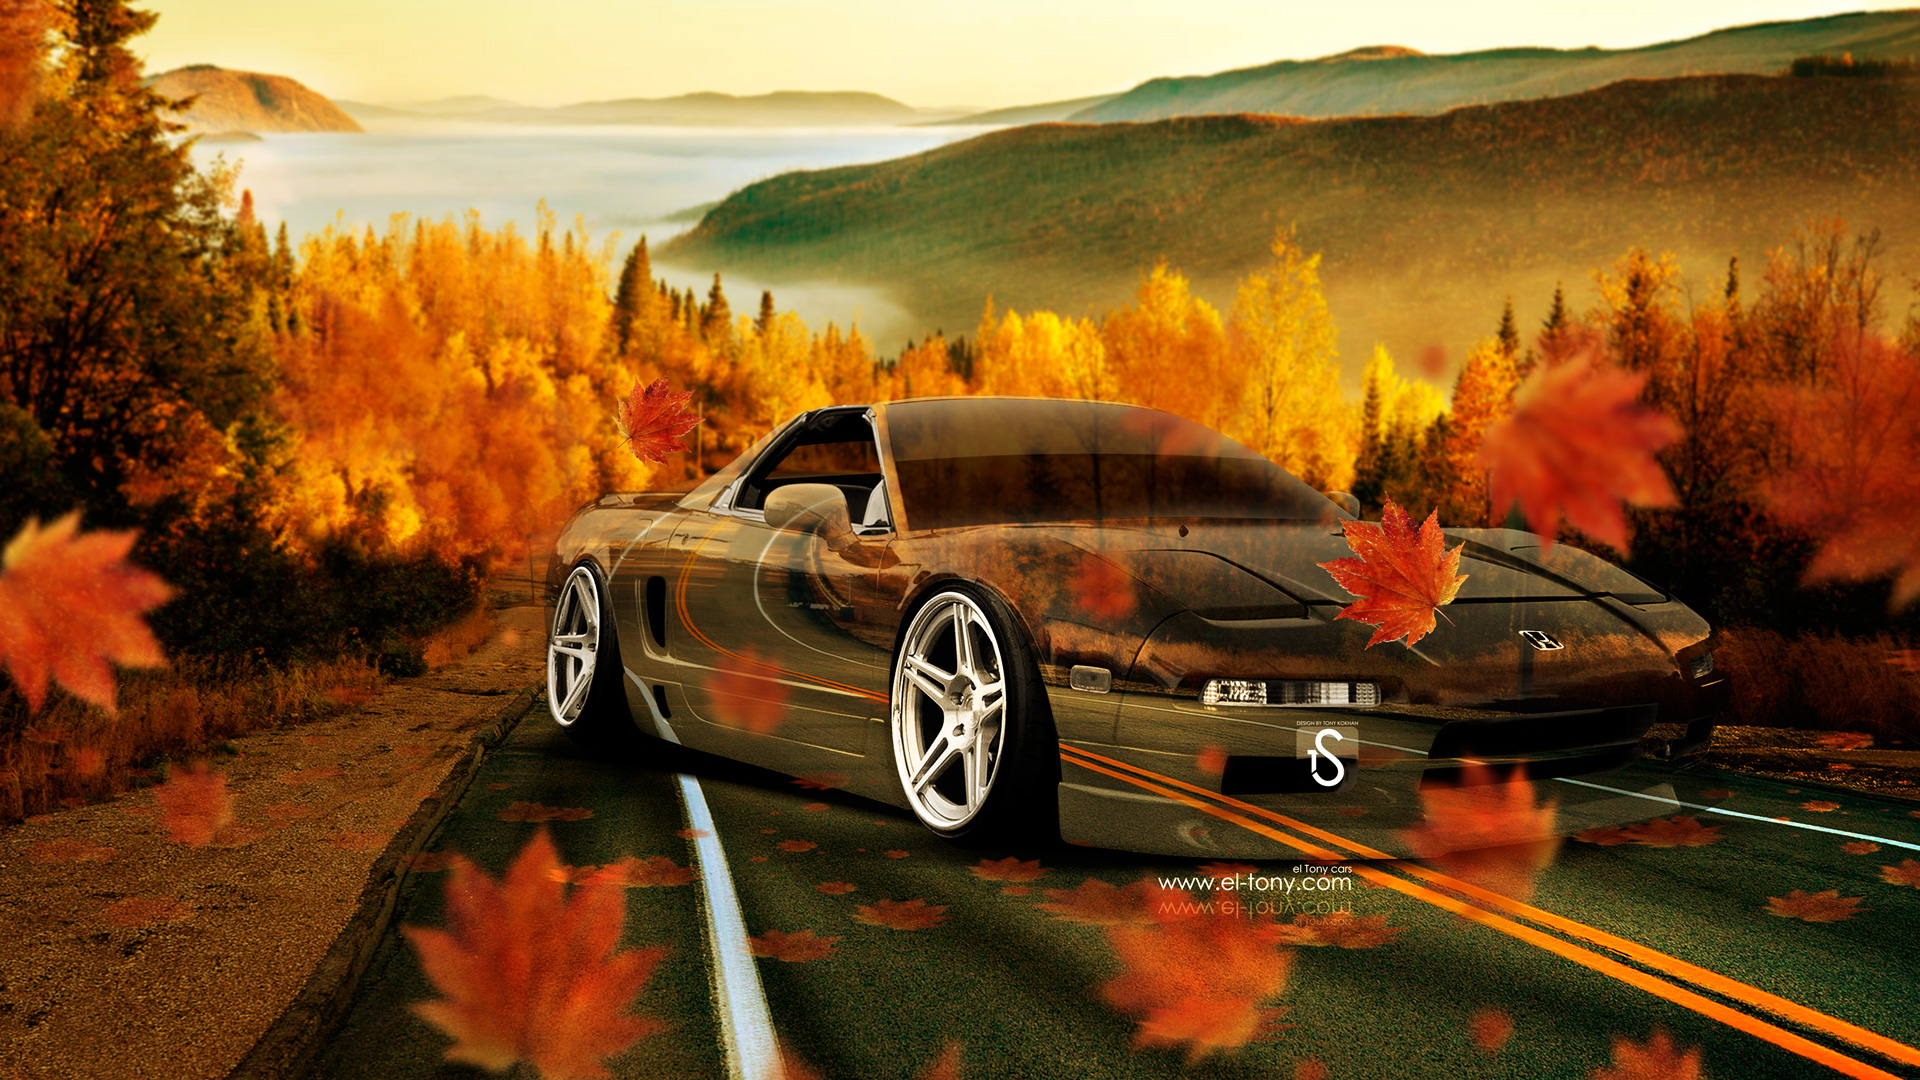 Superieur Honda NSX JDM Crystal Nature Autumn Car 2014